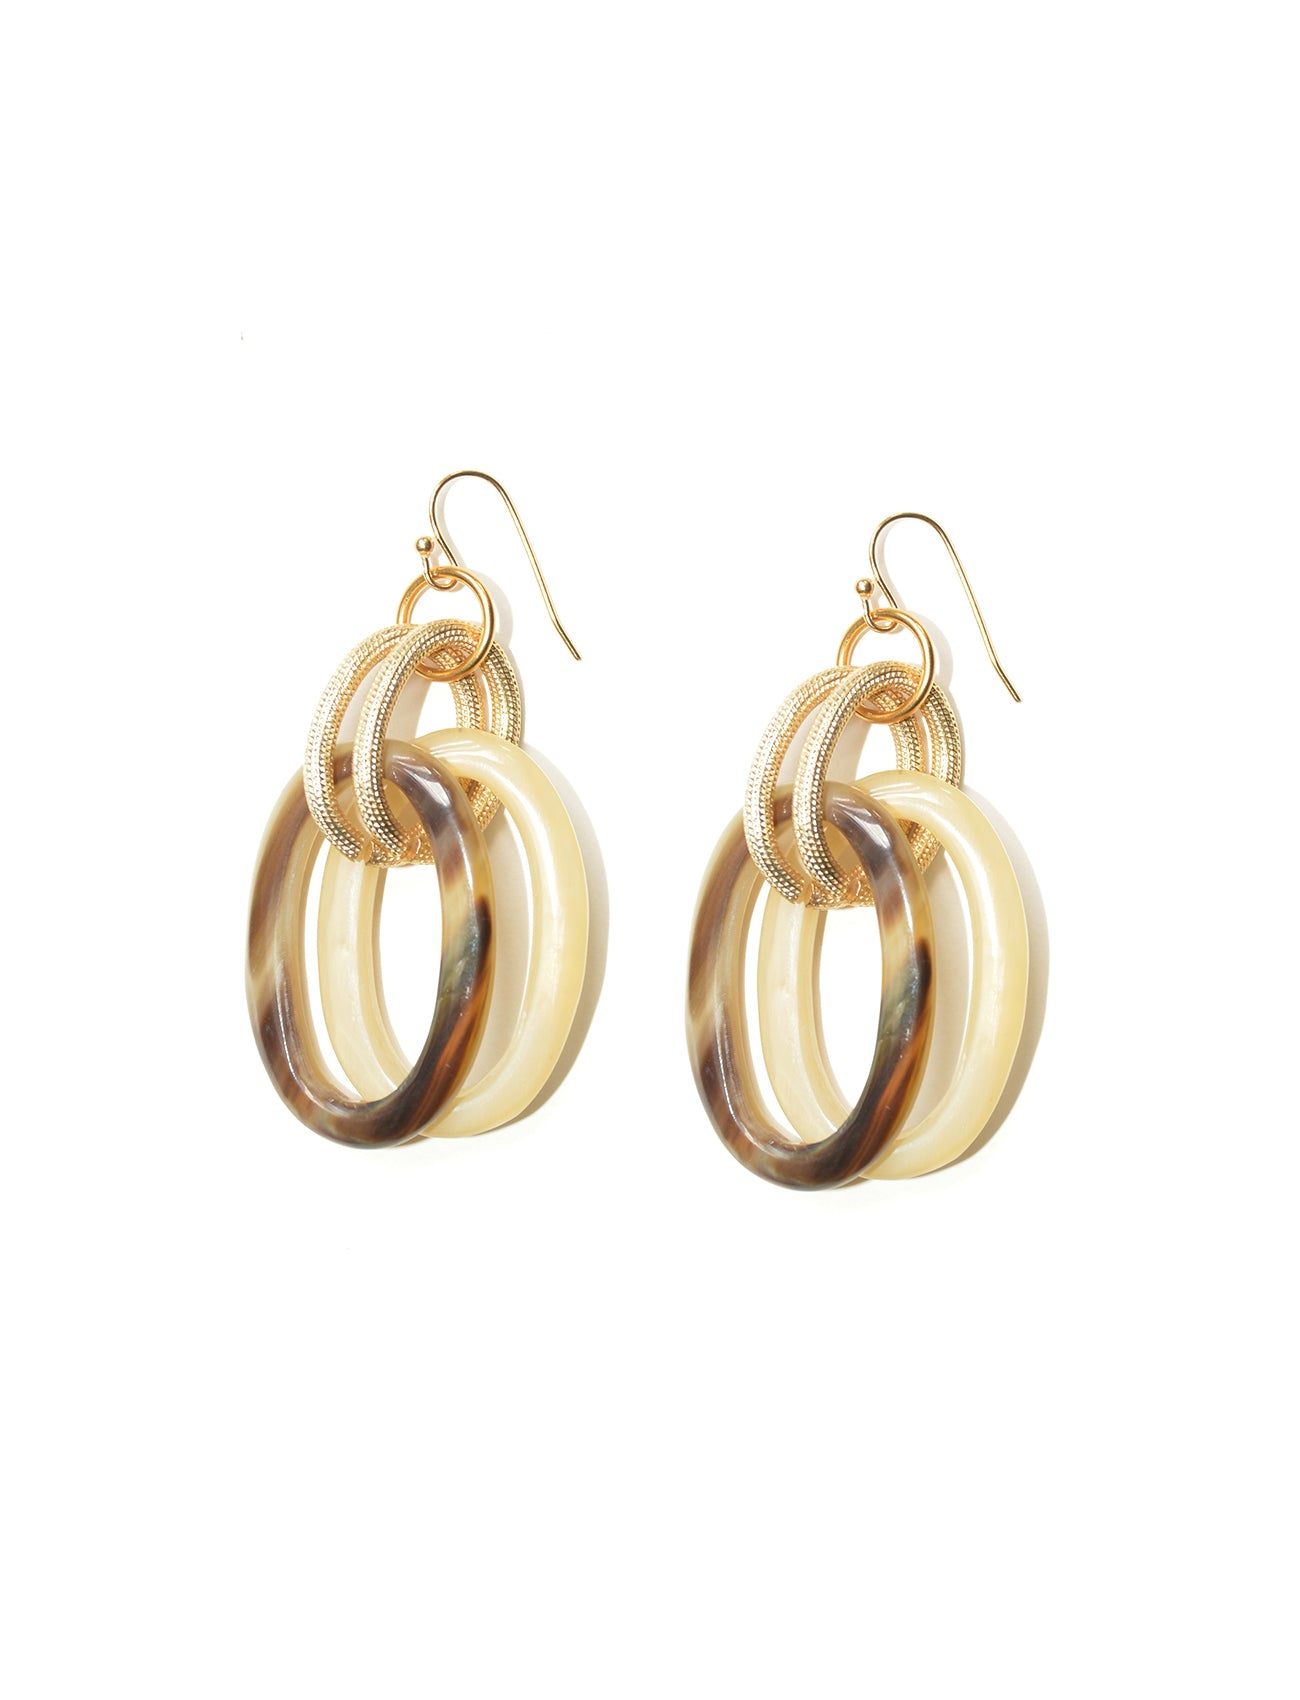 Horn and Gold Earrings